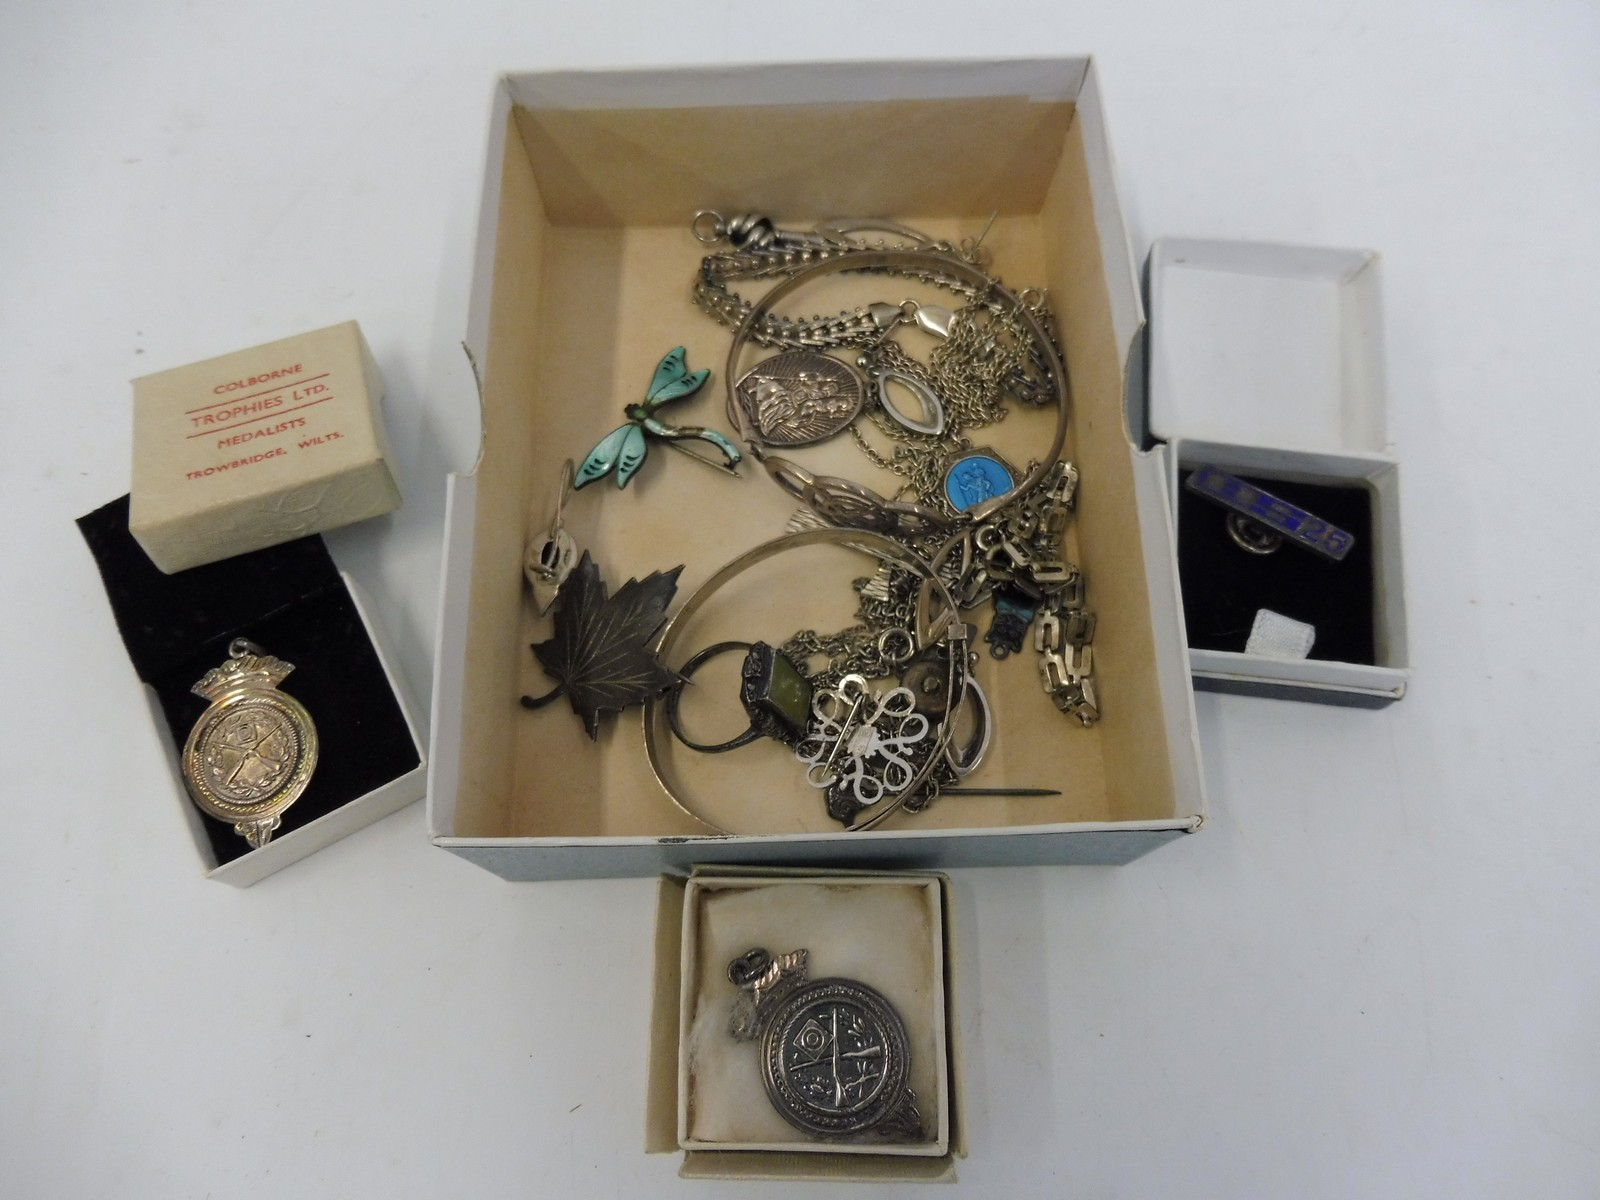 Lot 49 - A small box of mixed silver to include medallions, bangles etc.